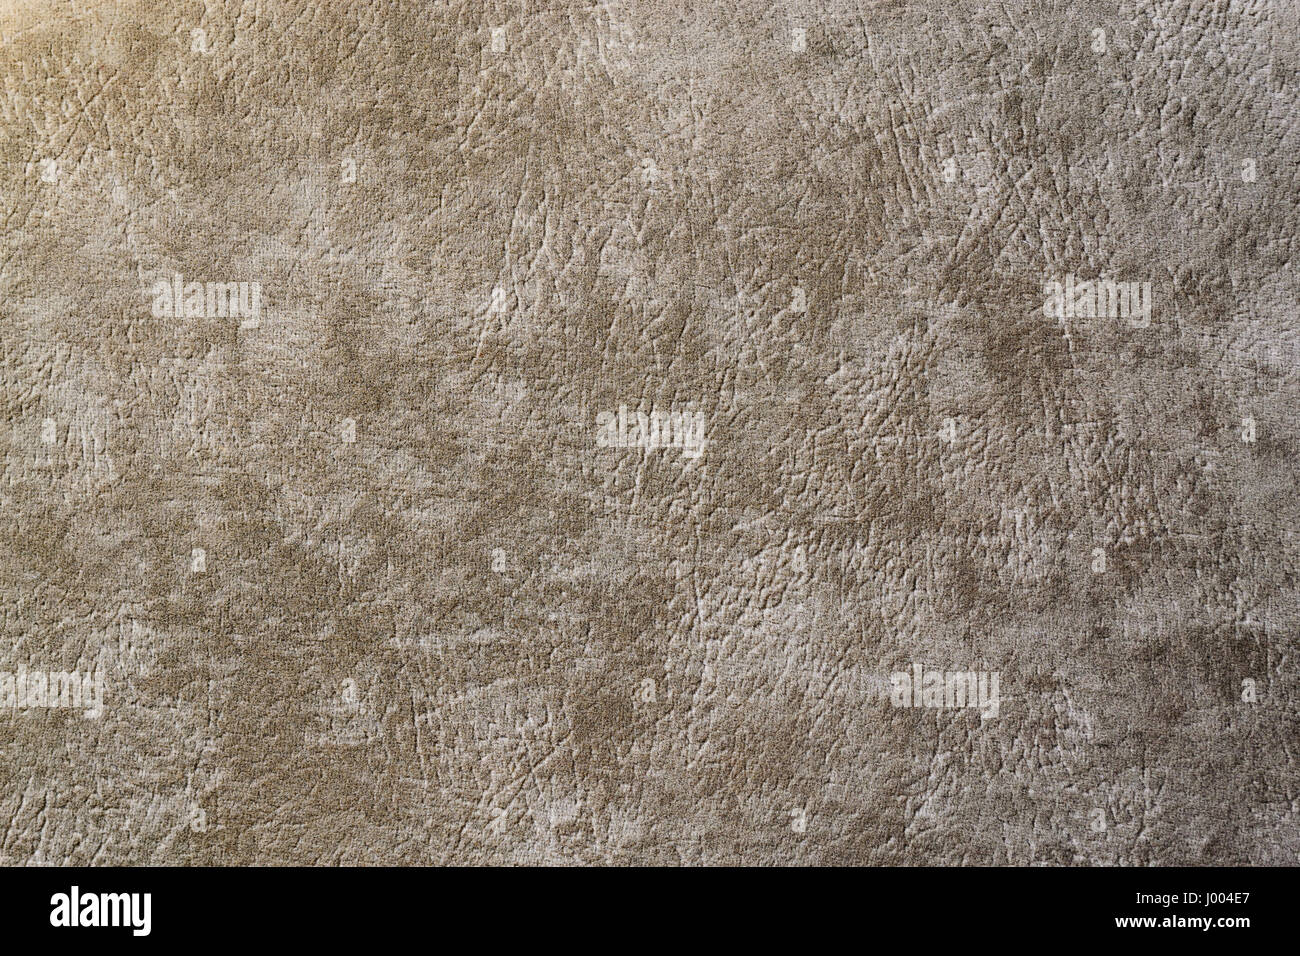 Velour Texture Fabric As Background In Vintage Style Stock Photo Alamy